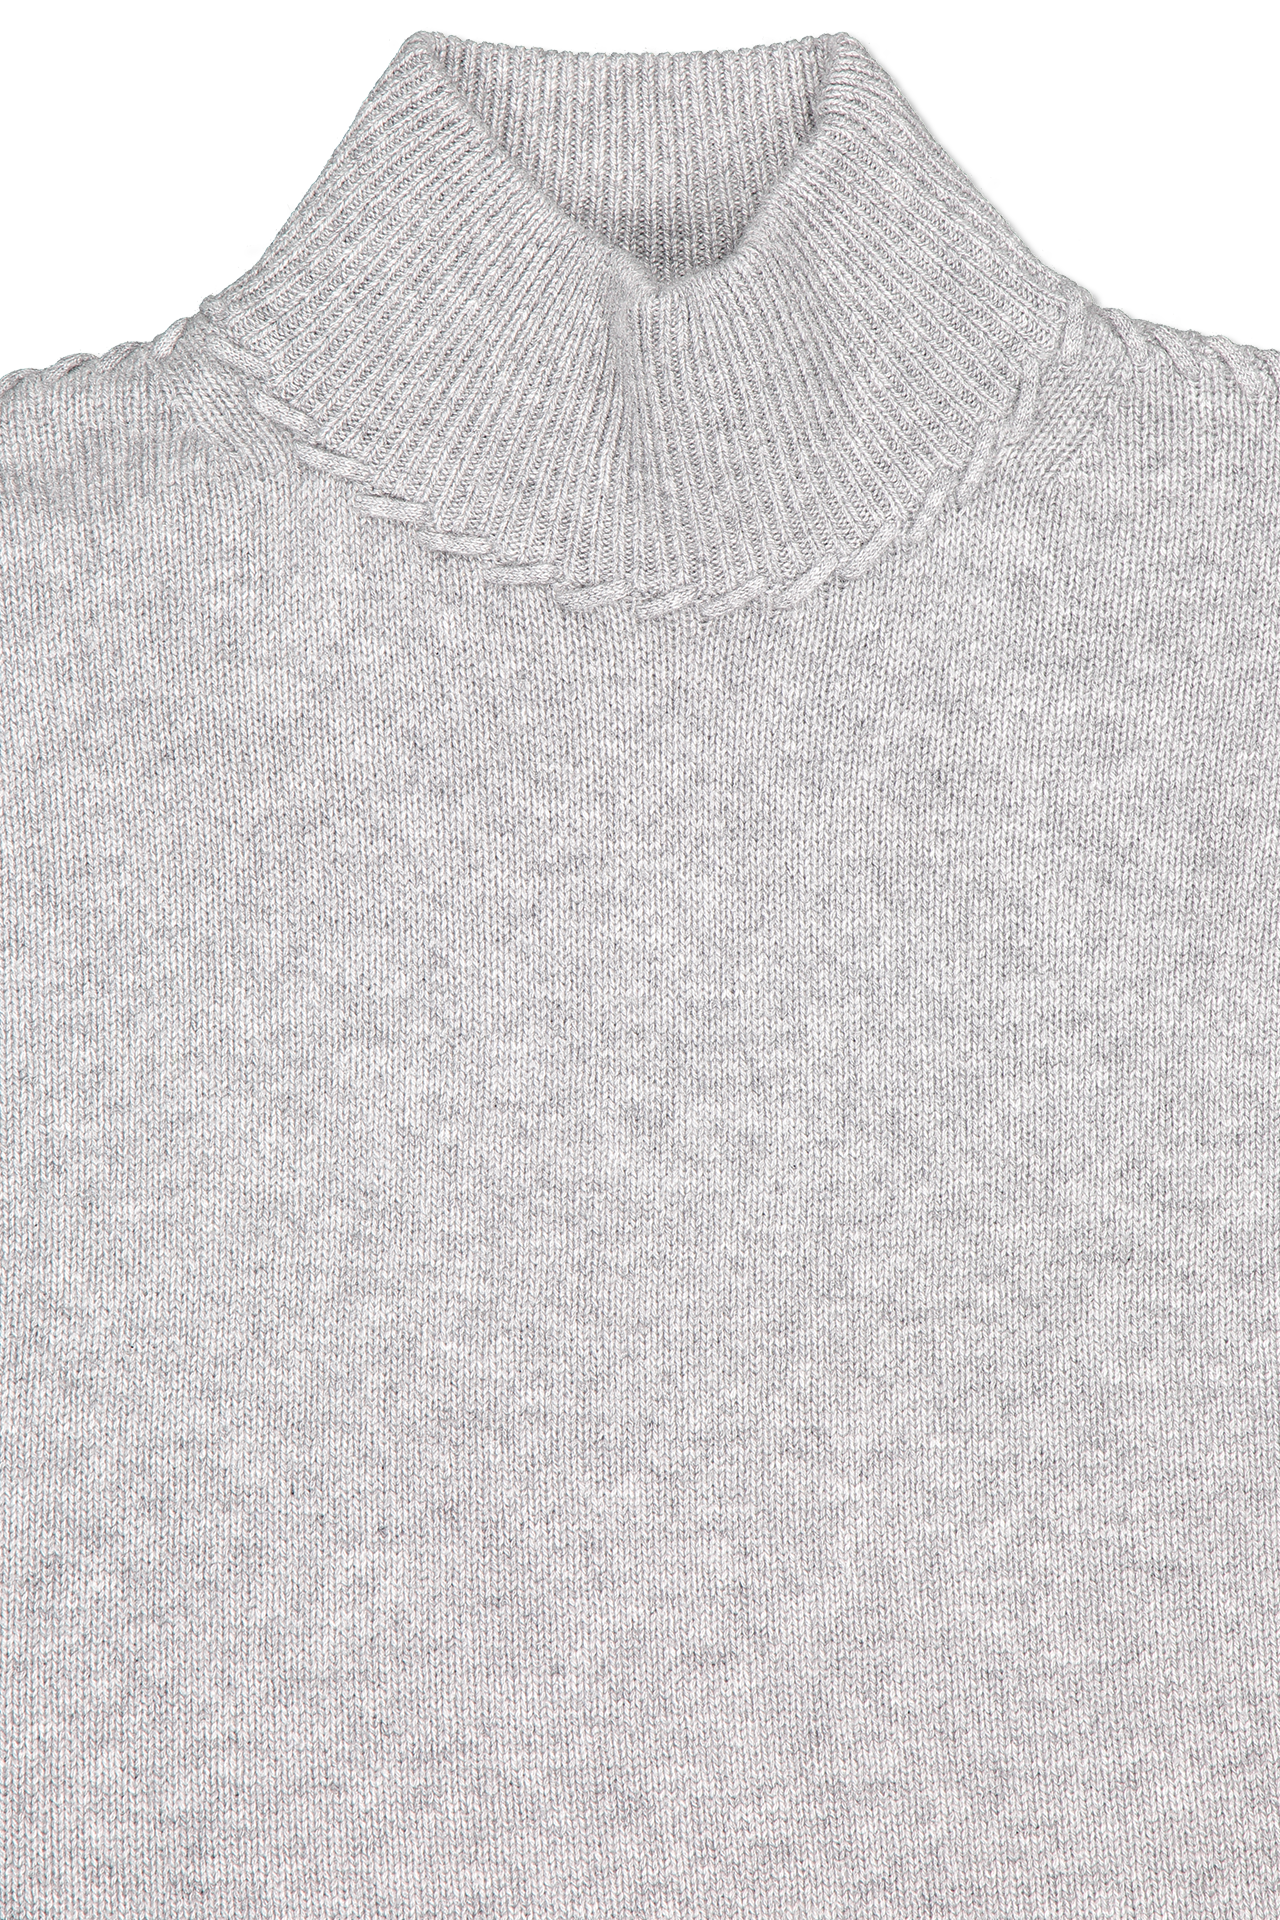 Front collar detail image of Theory Women's Whipstitch Cashmere Turtleneck